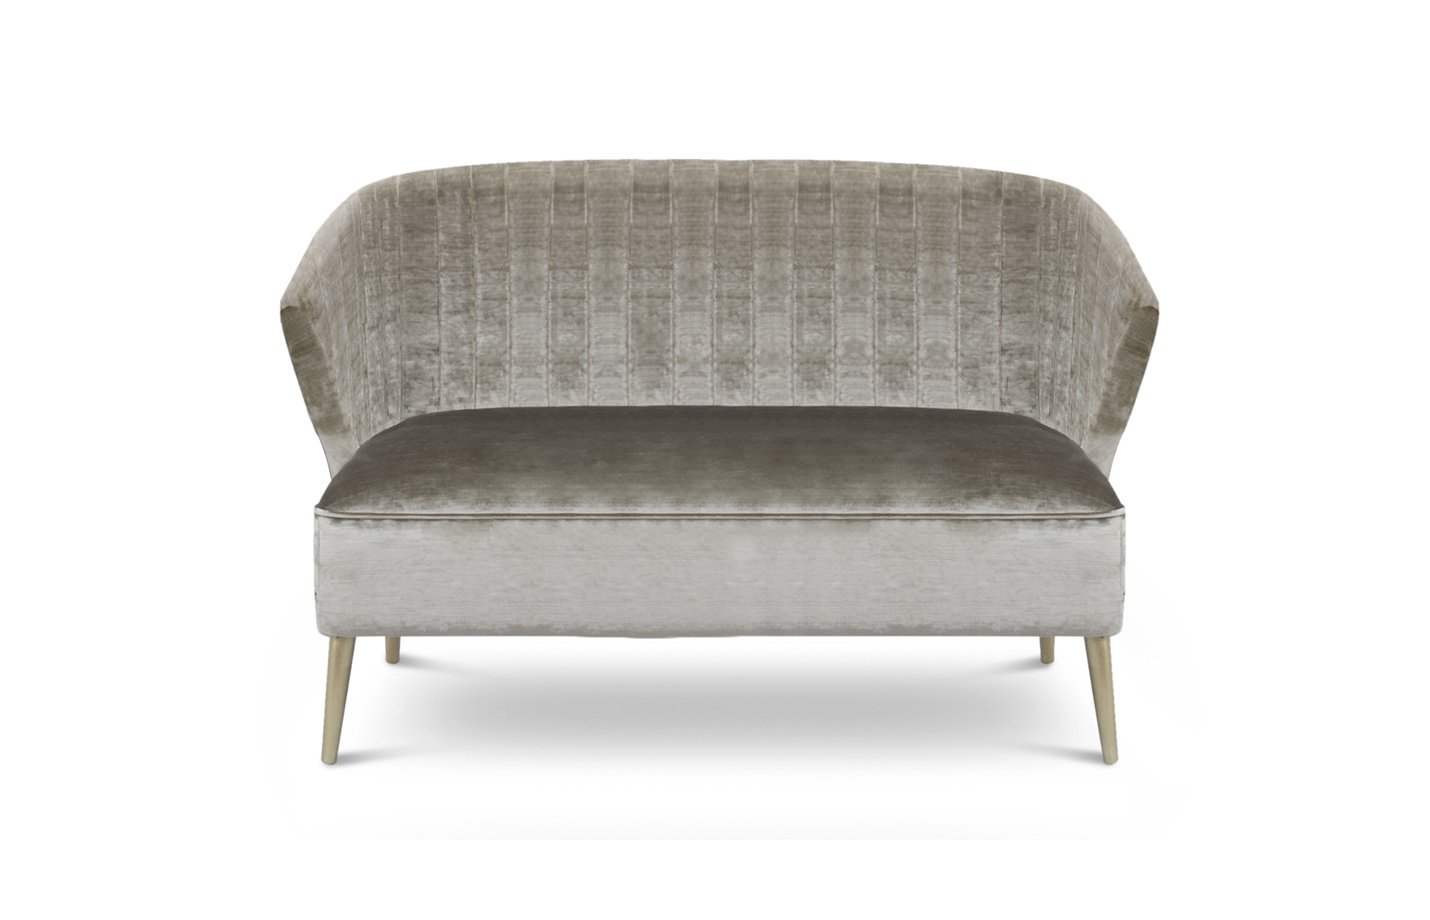 Nuka sofa two seater – light grey